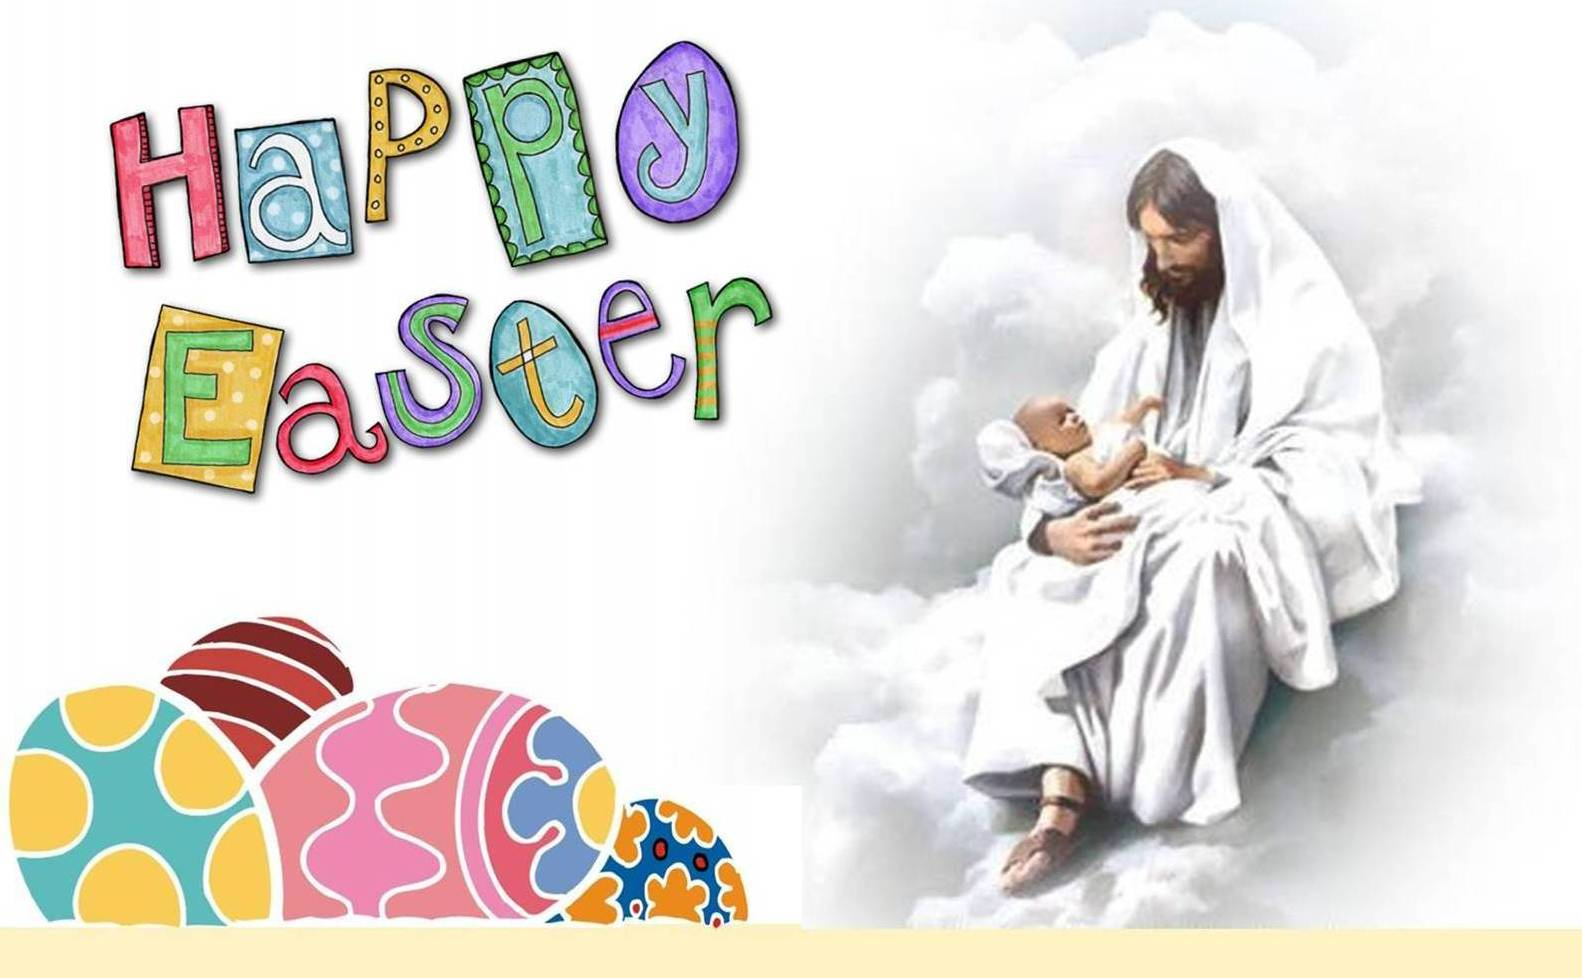 Easter Jesus wallpapers 2015 300x185 Happy Easter Jesus wallpapers 1582x978